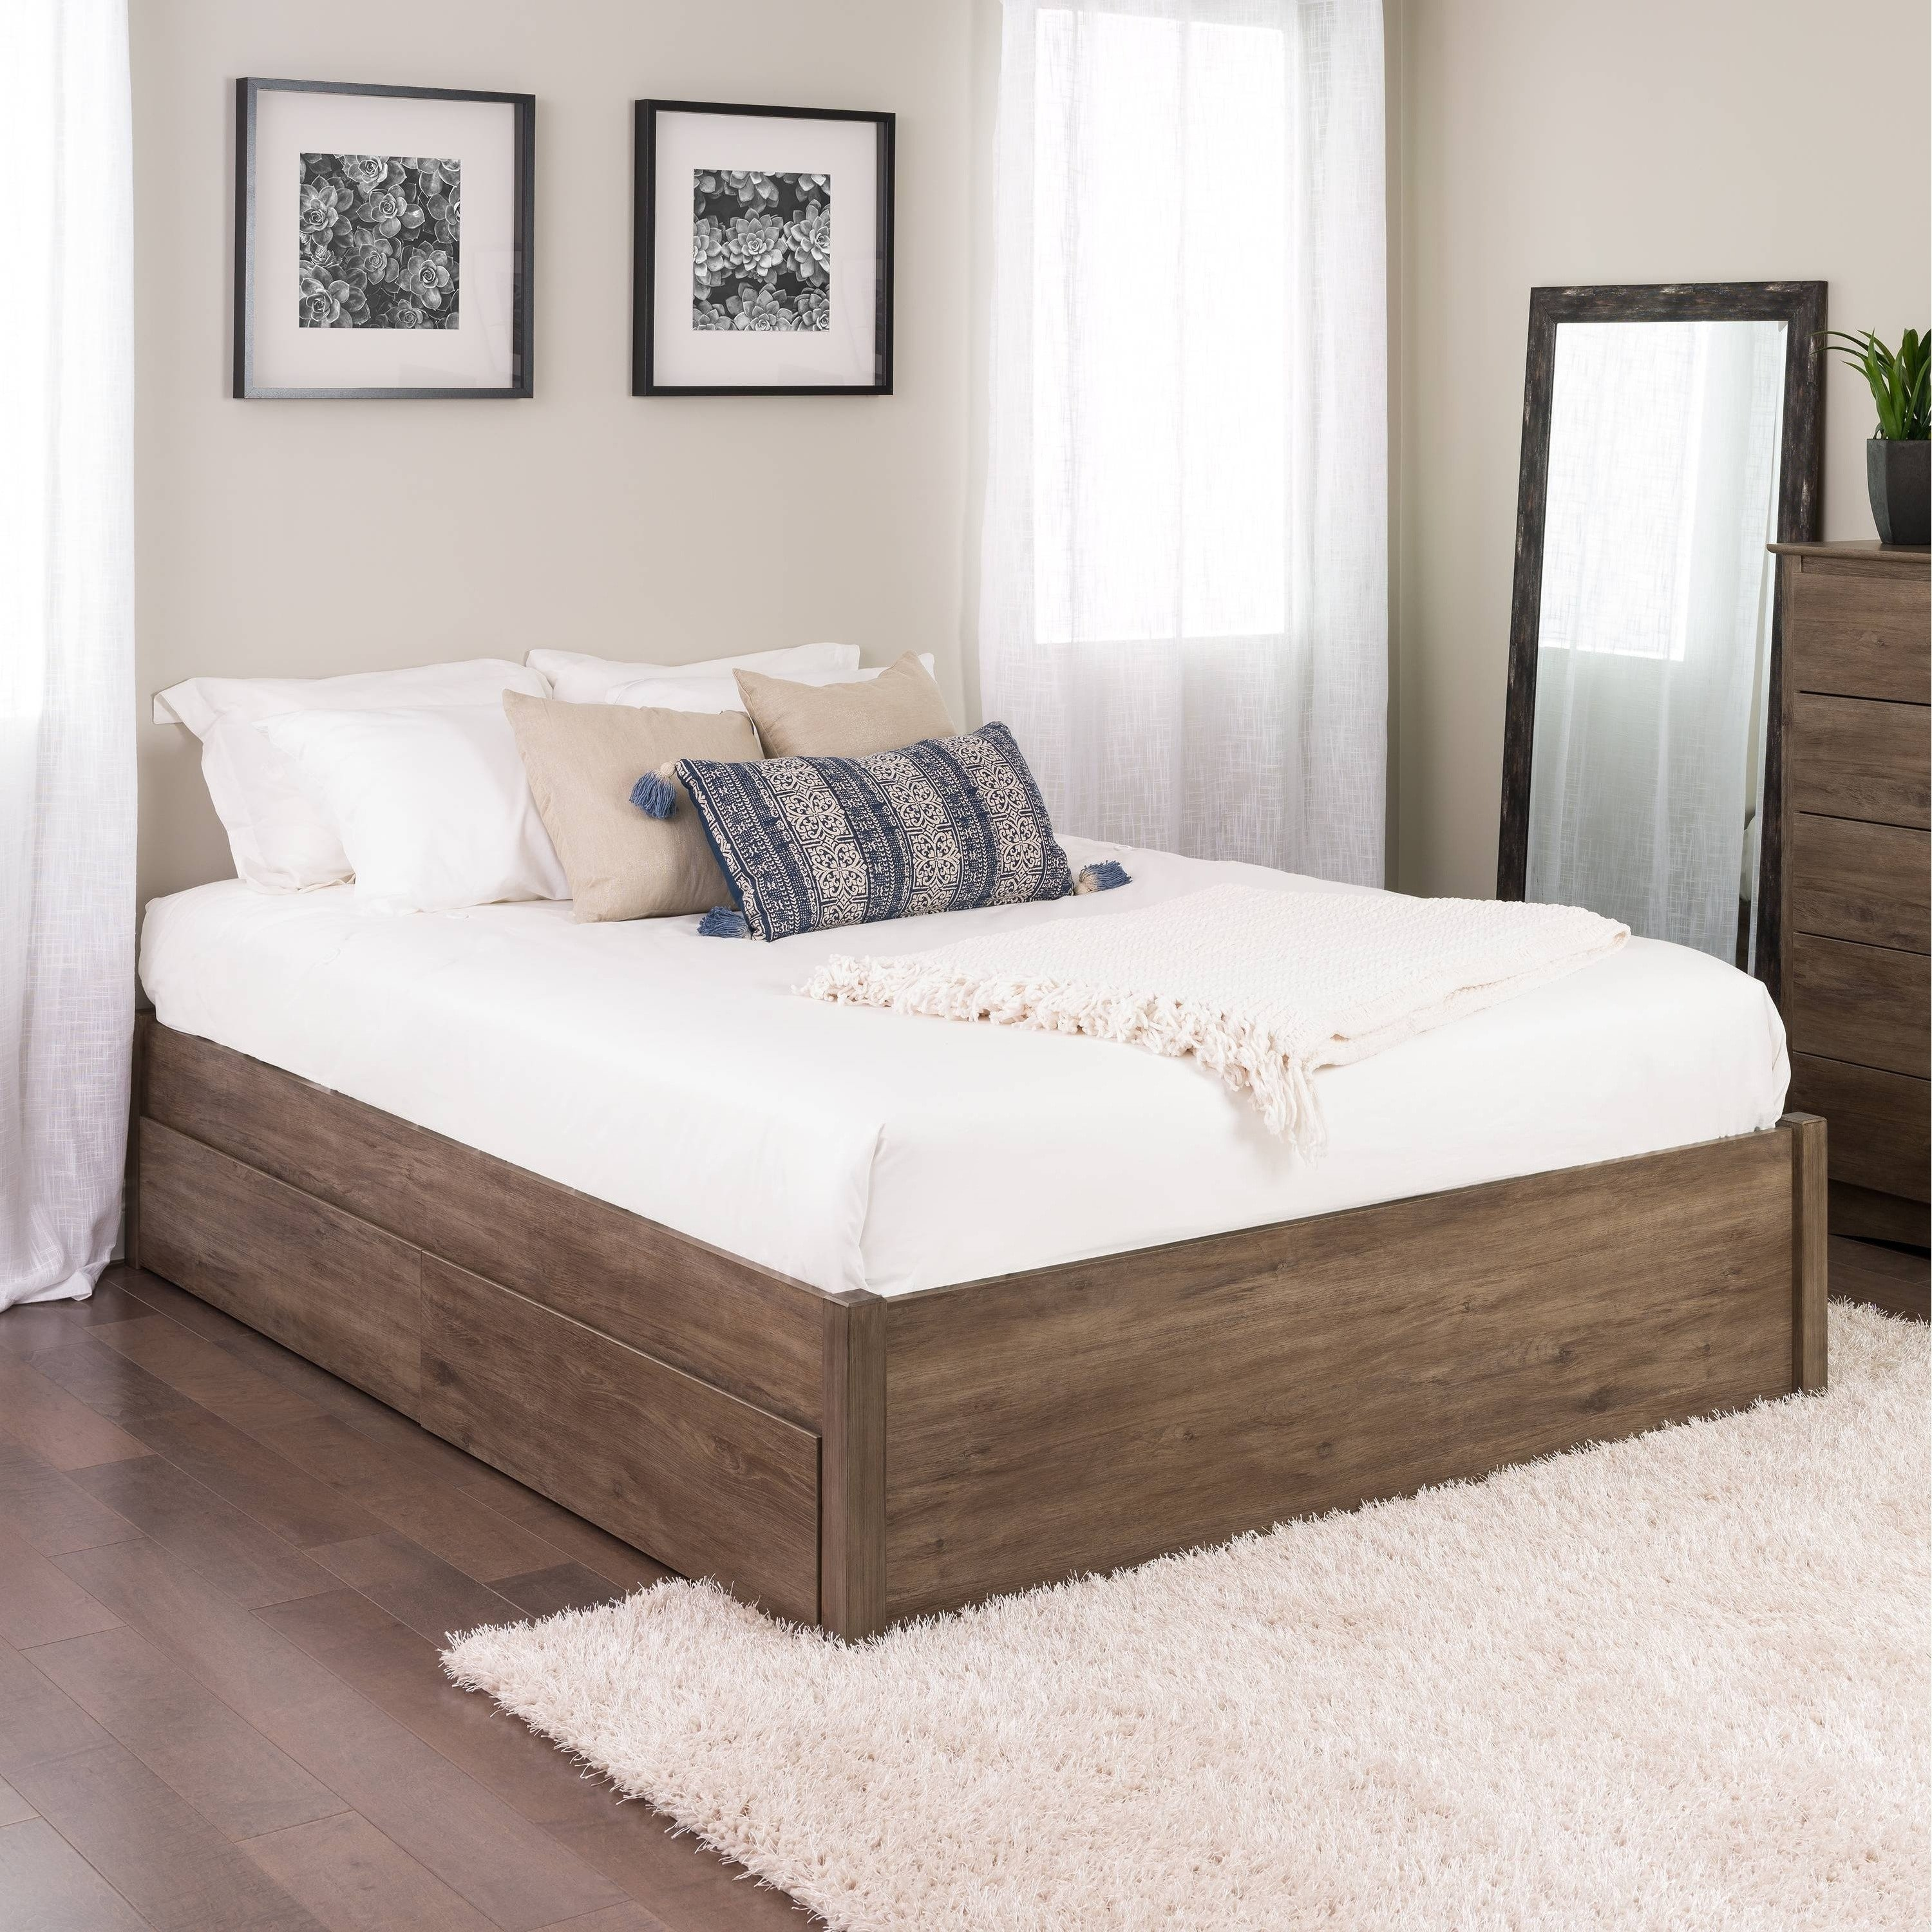 Rooms to Go Bedroom Furniture Sale Fresh Prepac Queen Select 4 Post Platform Bed with Optional Drawers